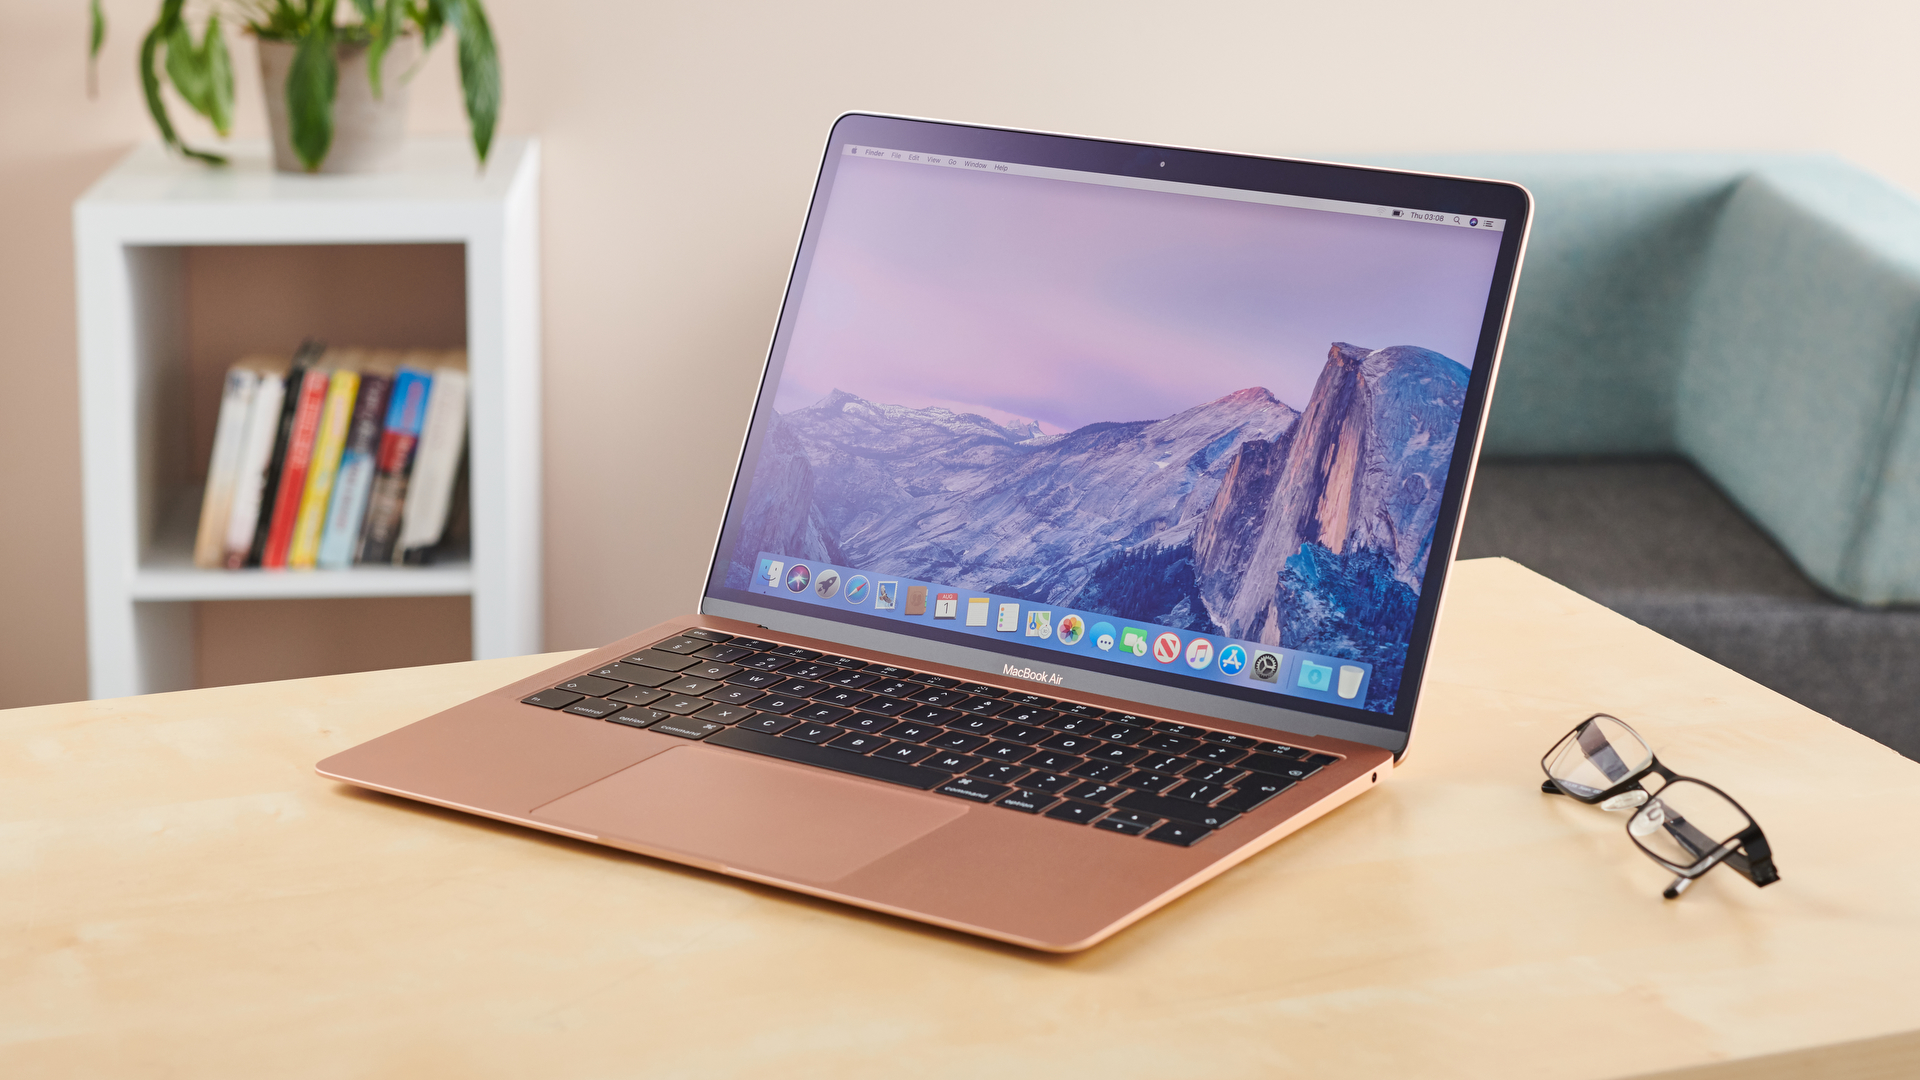 HvjfsxzQHCZxpUYTVgyBDM - MacBook Air 2019 vs MacBook Pro 2019: which is the best for you?